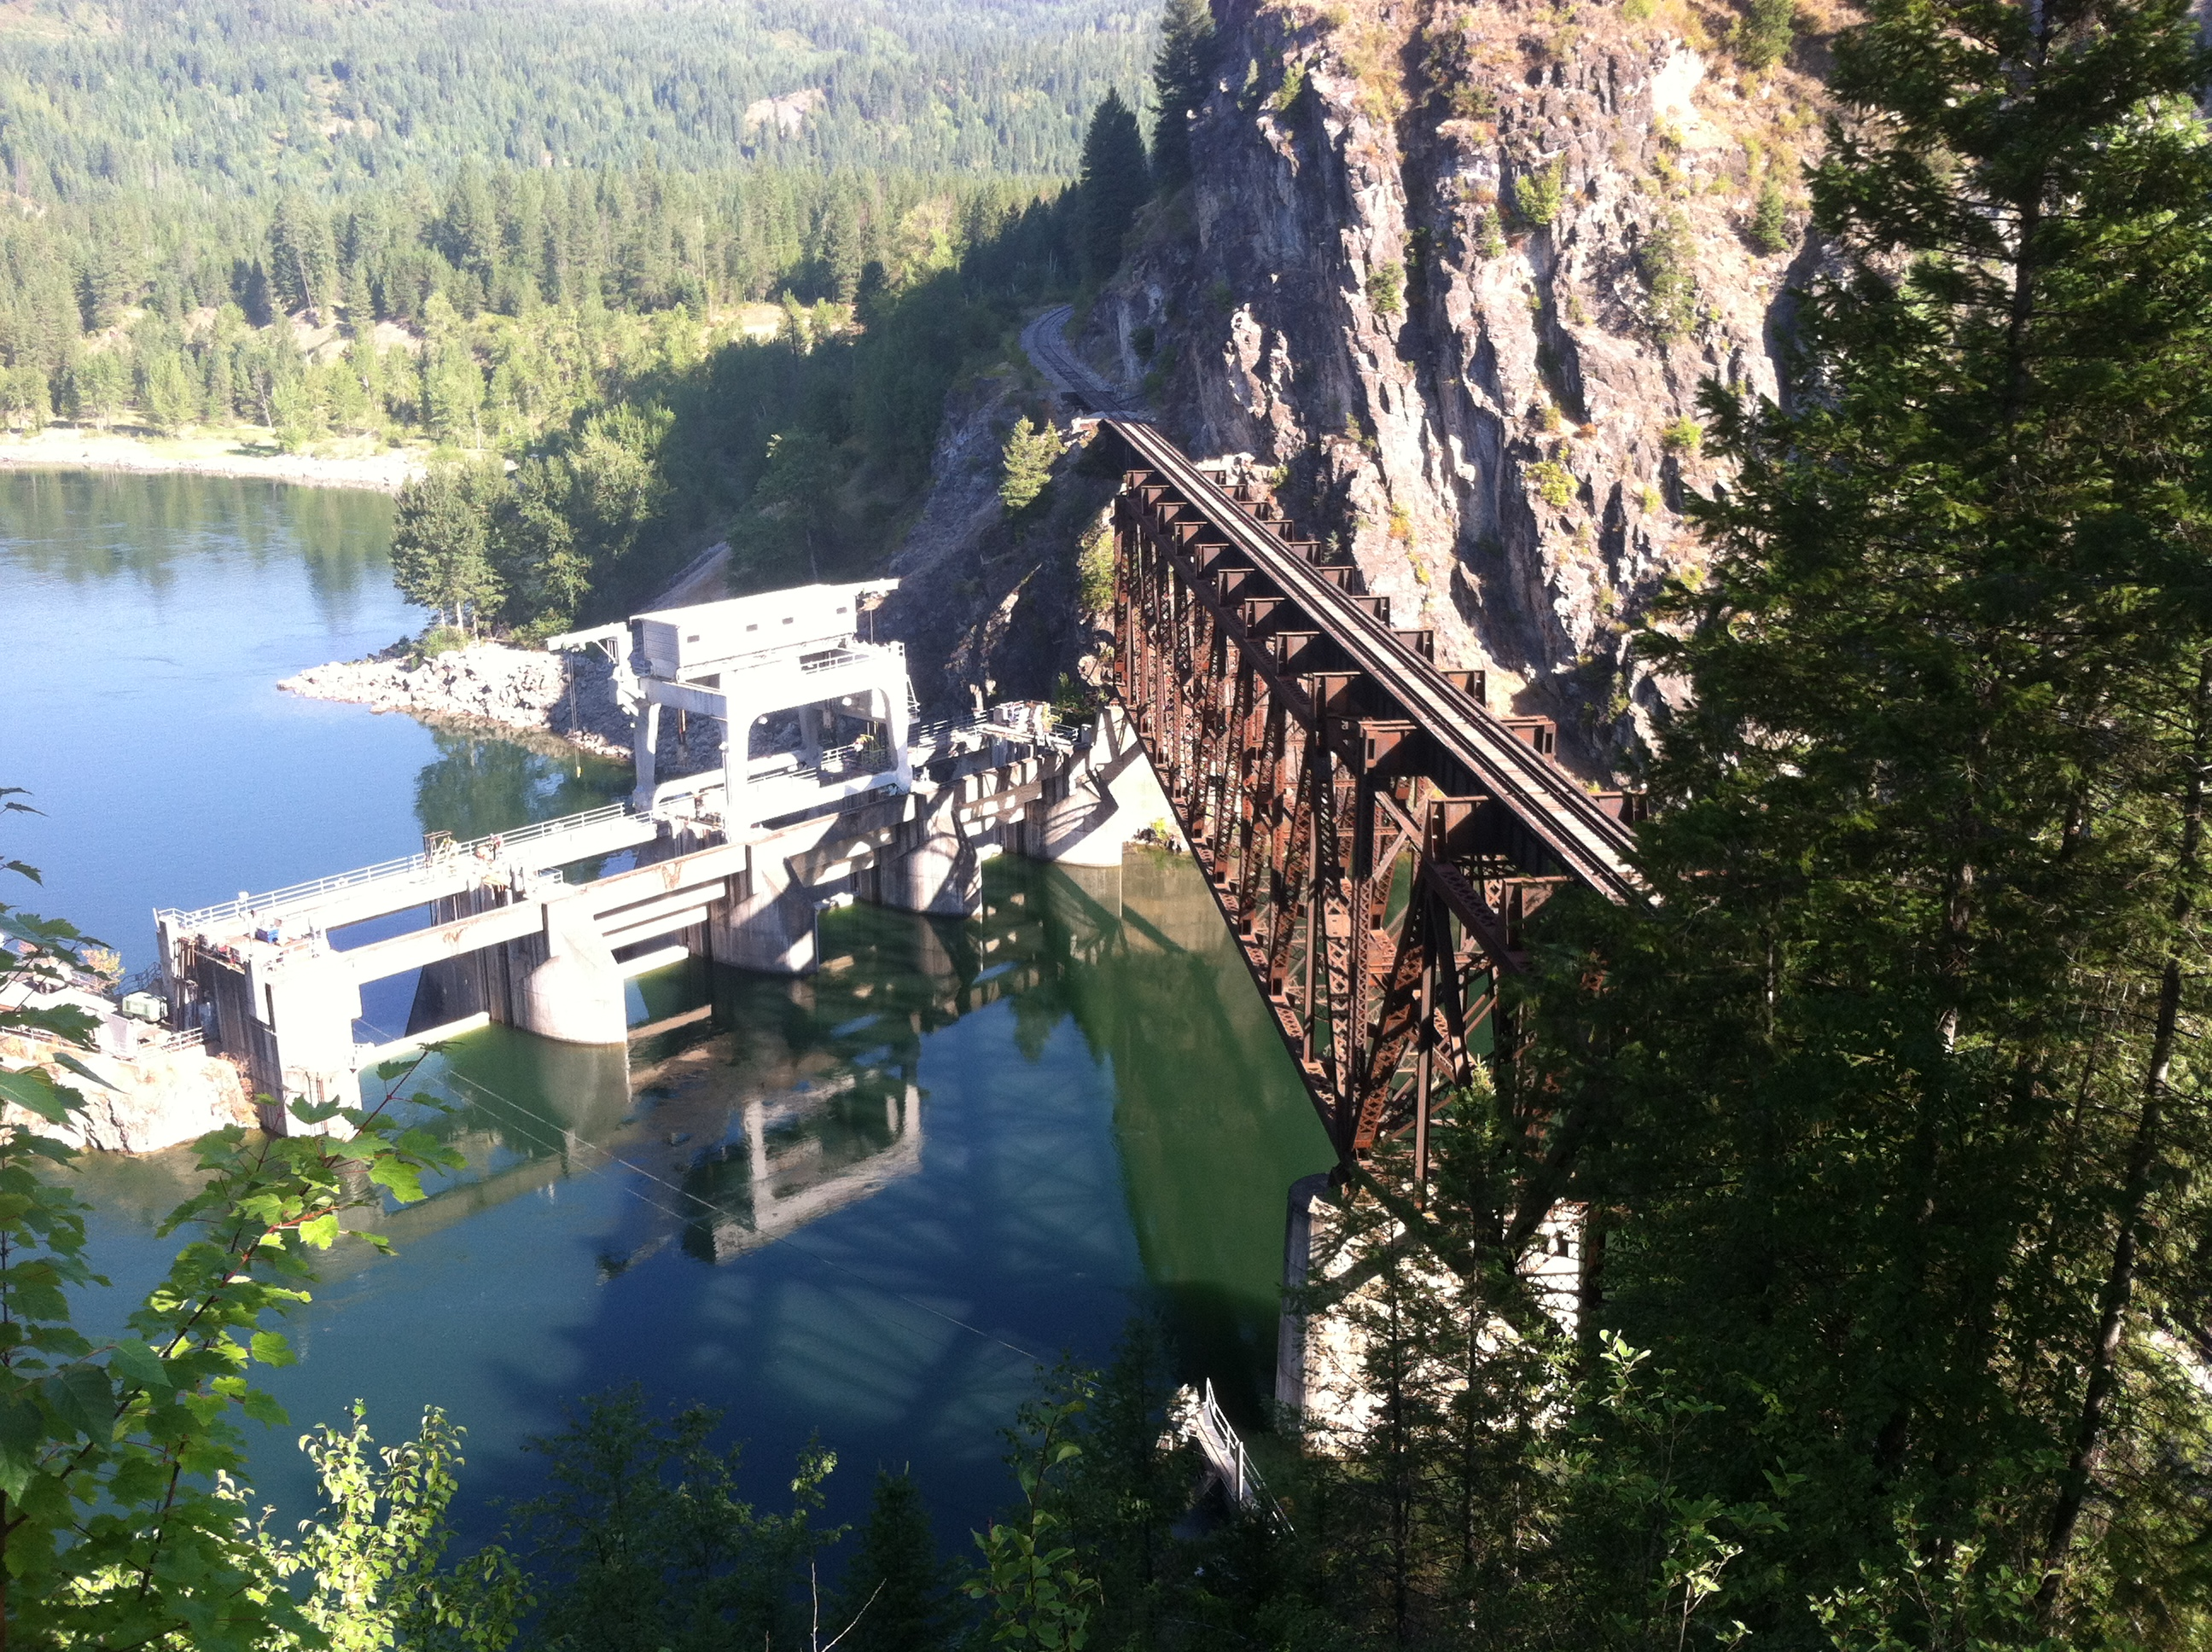 Historic-era fishing weir observable in the river during low water season. HRA performed all phases of cultural resources compliance for Avista's relicensing of five hyrdoelectric projects in eastern Washington and northern Idaho.